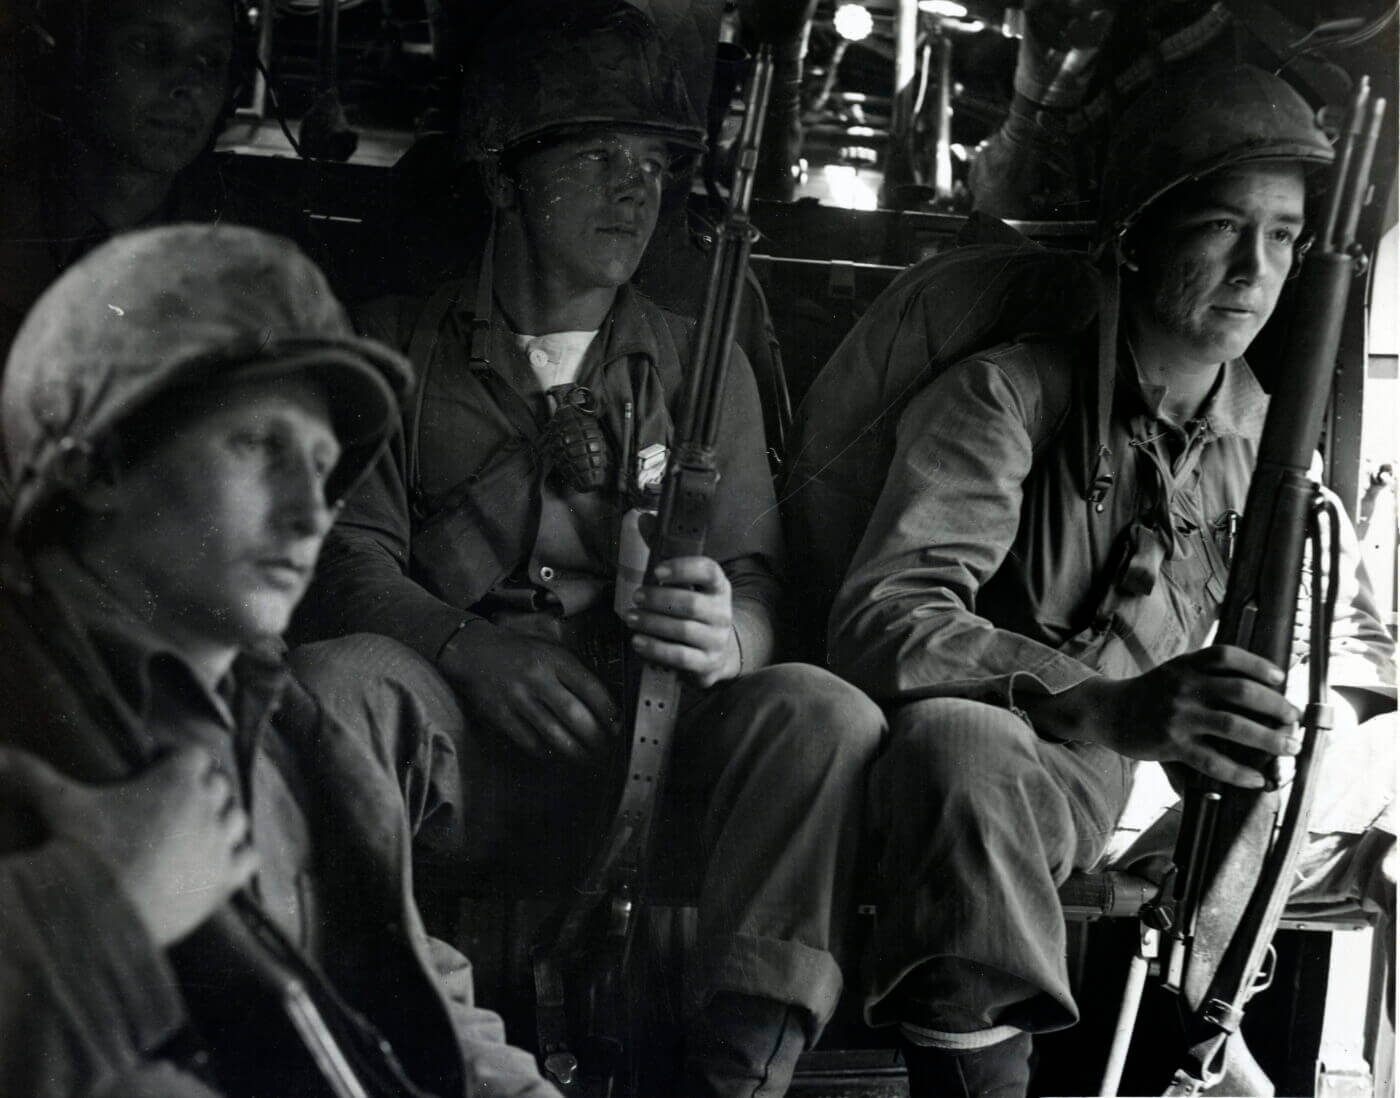 Marines in Helicopter with M1 Garand rifle in Korean War